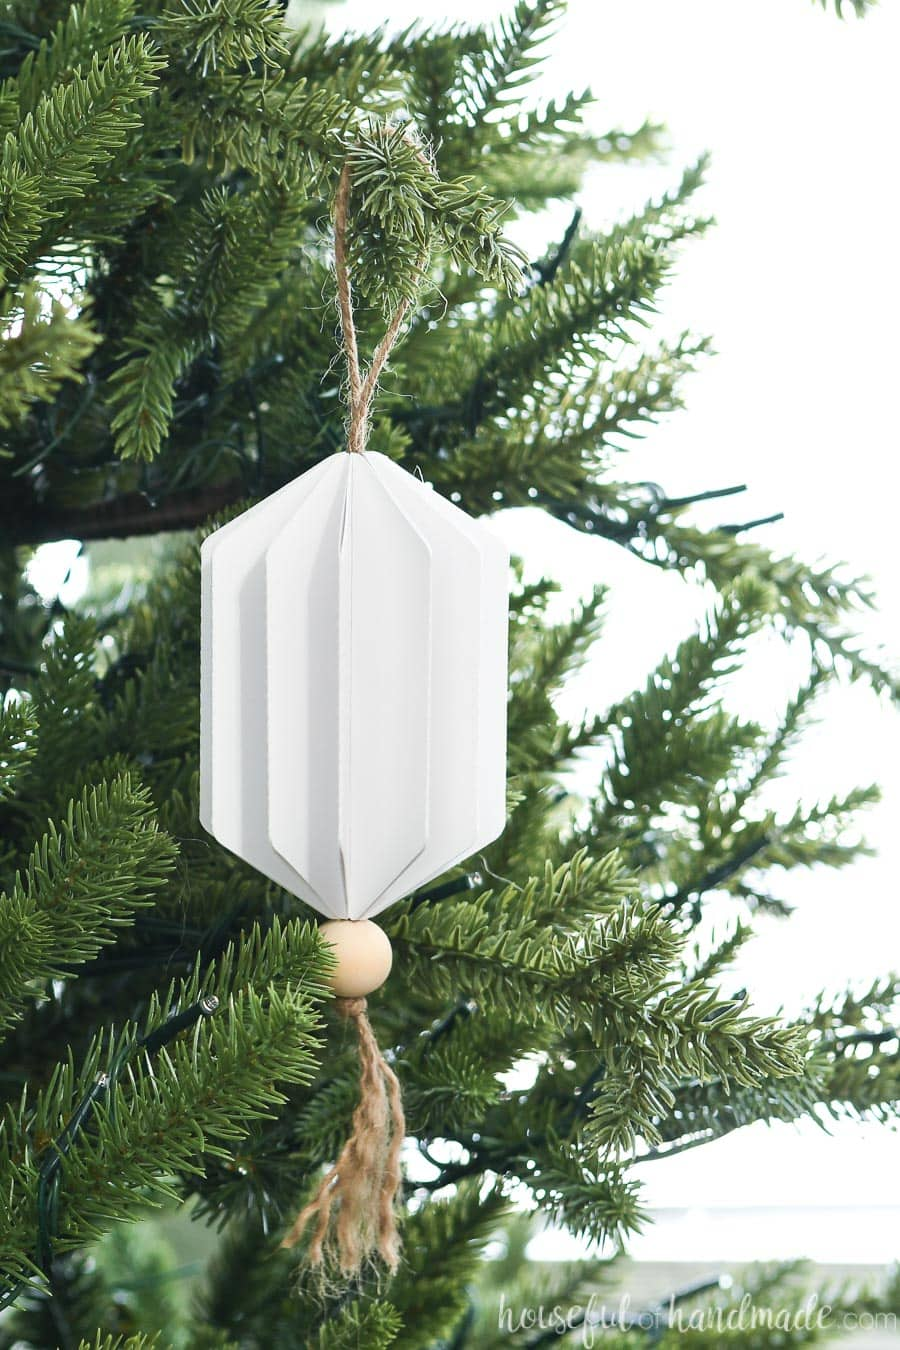 Close up of the emerald shaped 3D paper Christmas ornament made from paper.